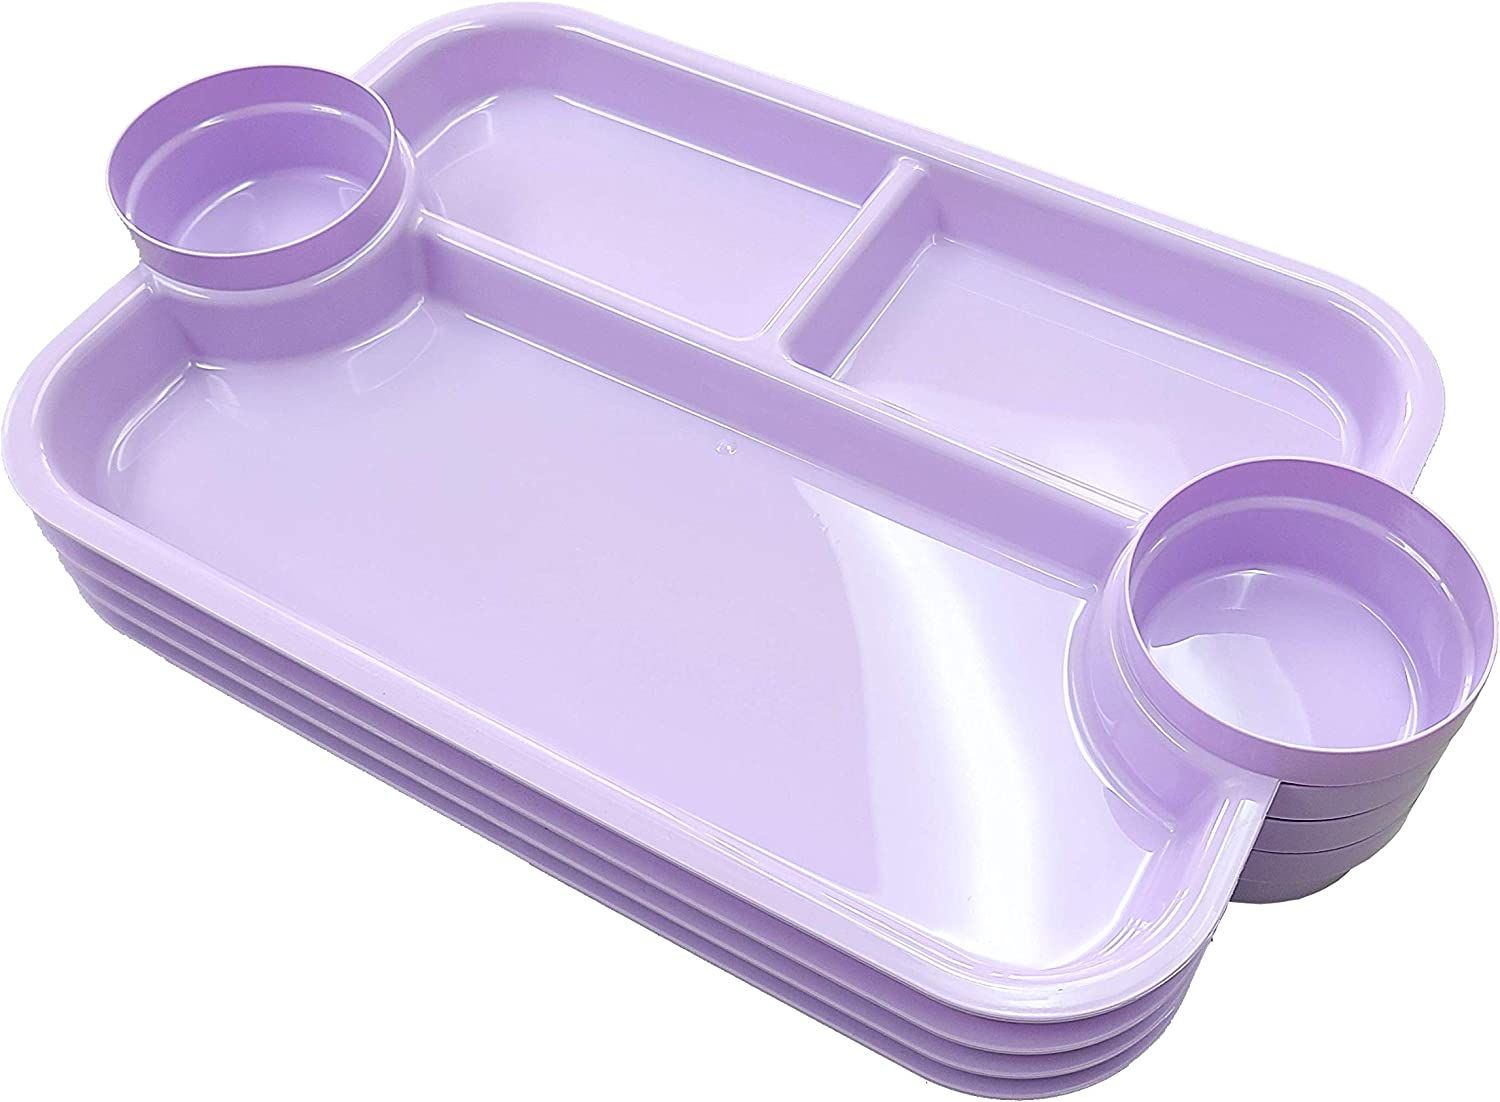 The Party Dipper - Food Tray Serving Tray for kids and adults multi purpose - Innovative Design - Made In USA (Light Lavender)